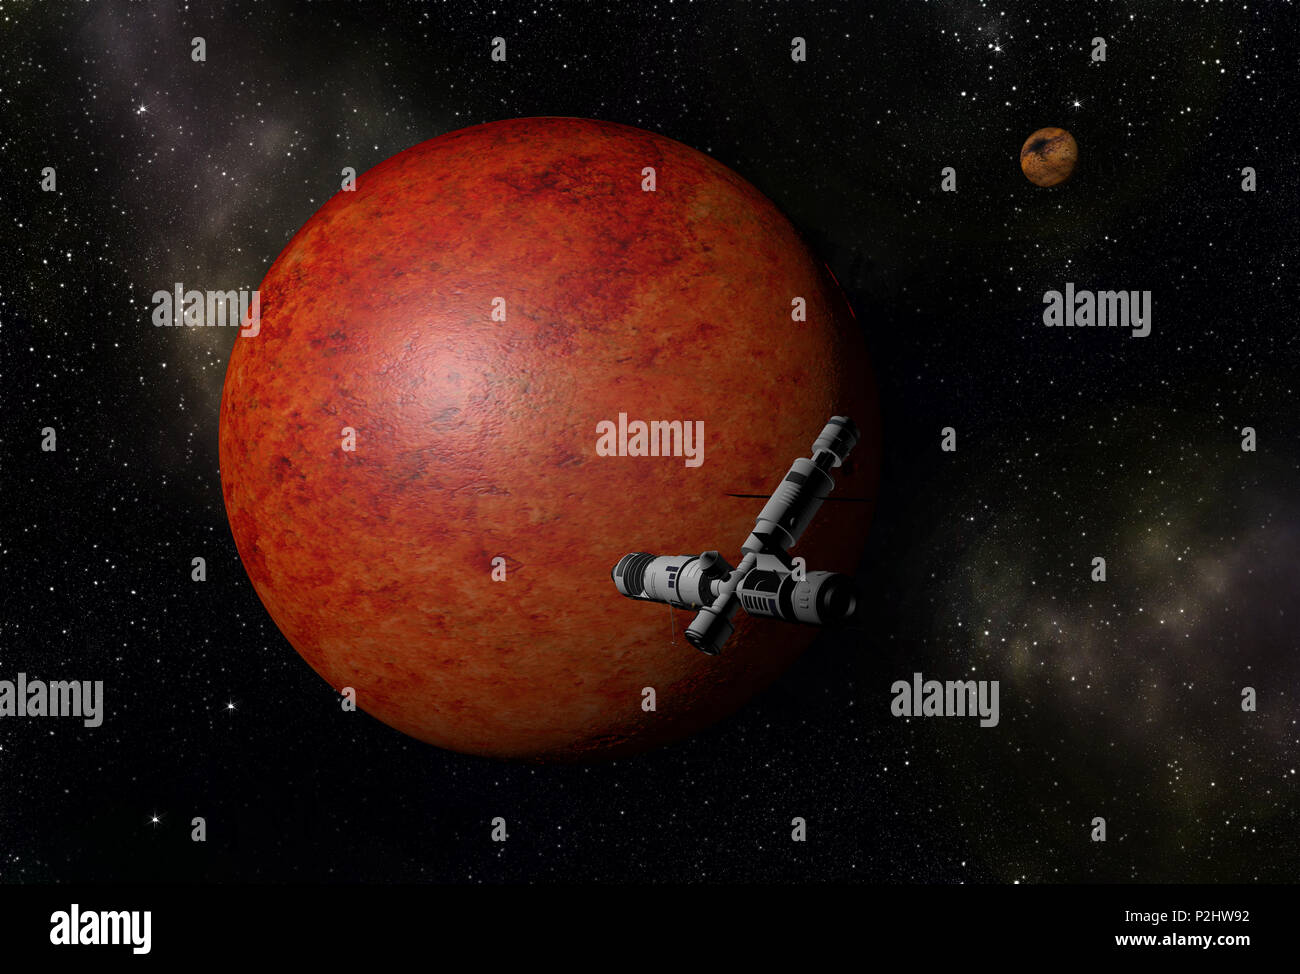 Interstellar spaceship flying to unknown red planet in outer space with stars and nebulas. Space exploration. - Stock Image